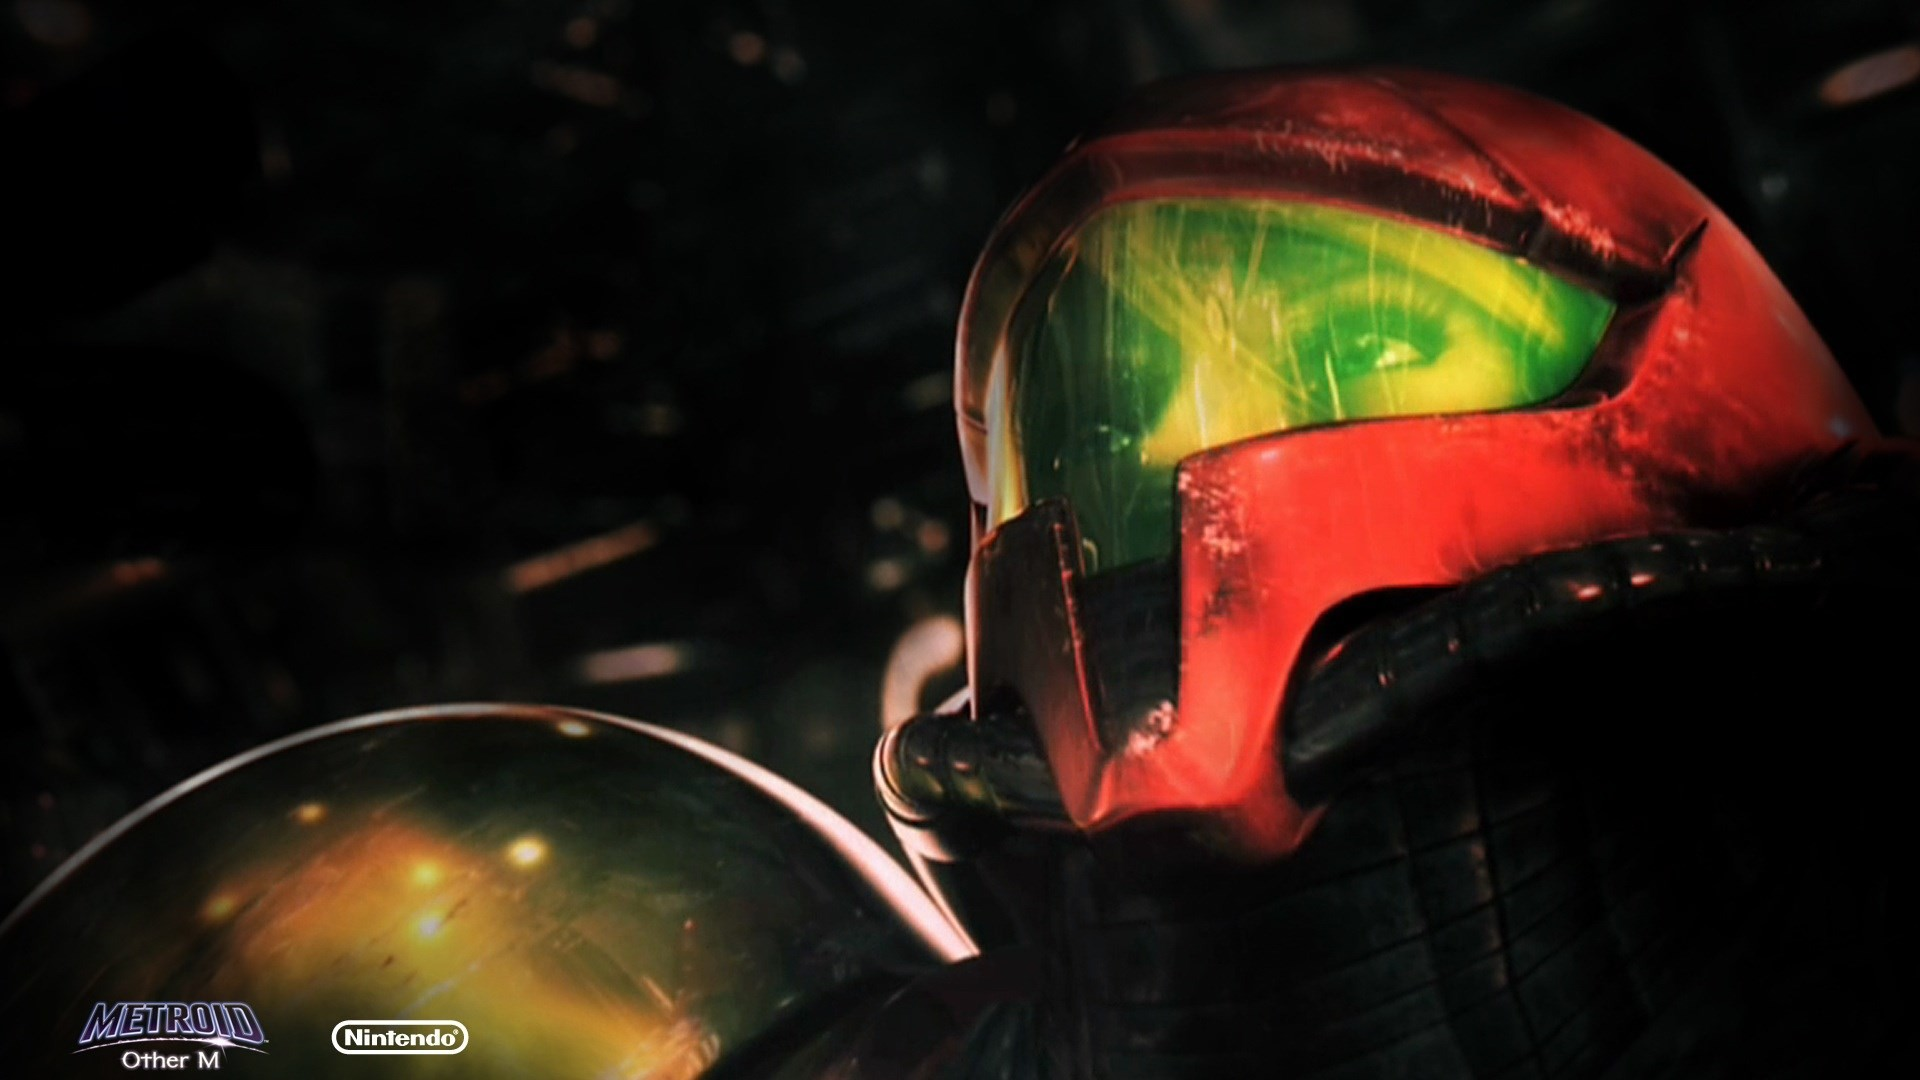 #2005543, metroid other m category – Desktop Backgrounds – metroid other m  image